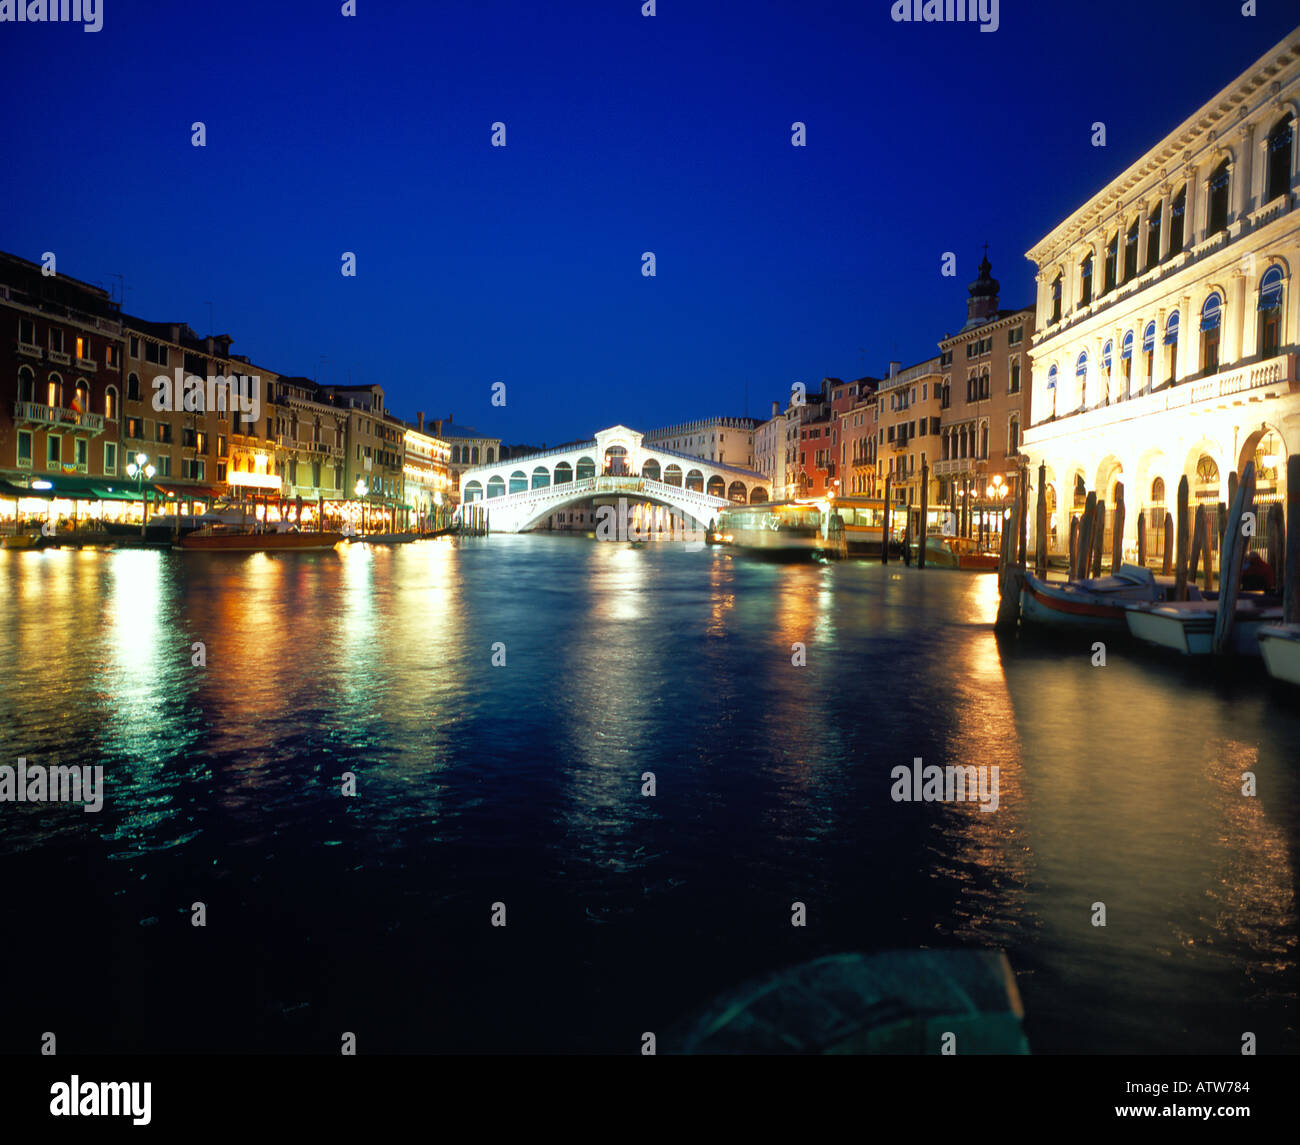 Rialto Bridge Canale Grande at night Venice, UNESCO World Heritage Site, Italy, Europe. Photo by Willy Matheisl - Stock Image